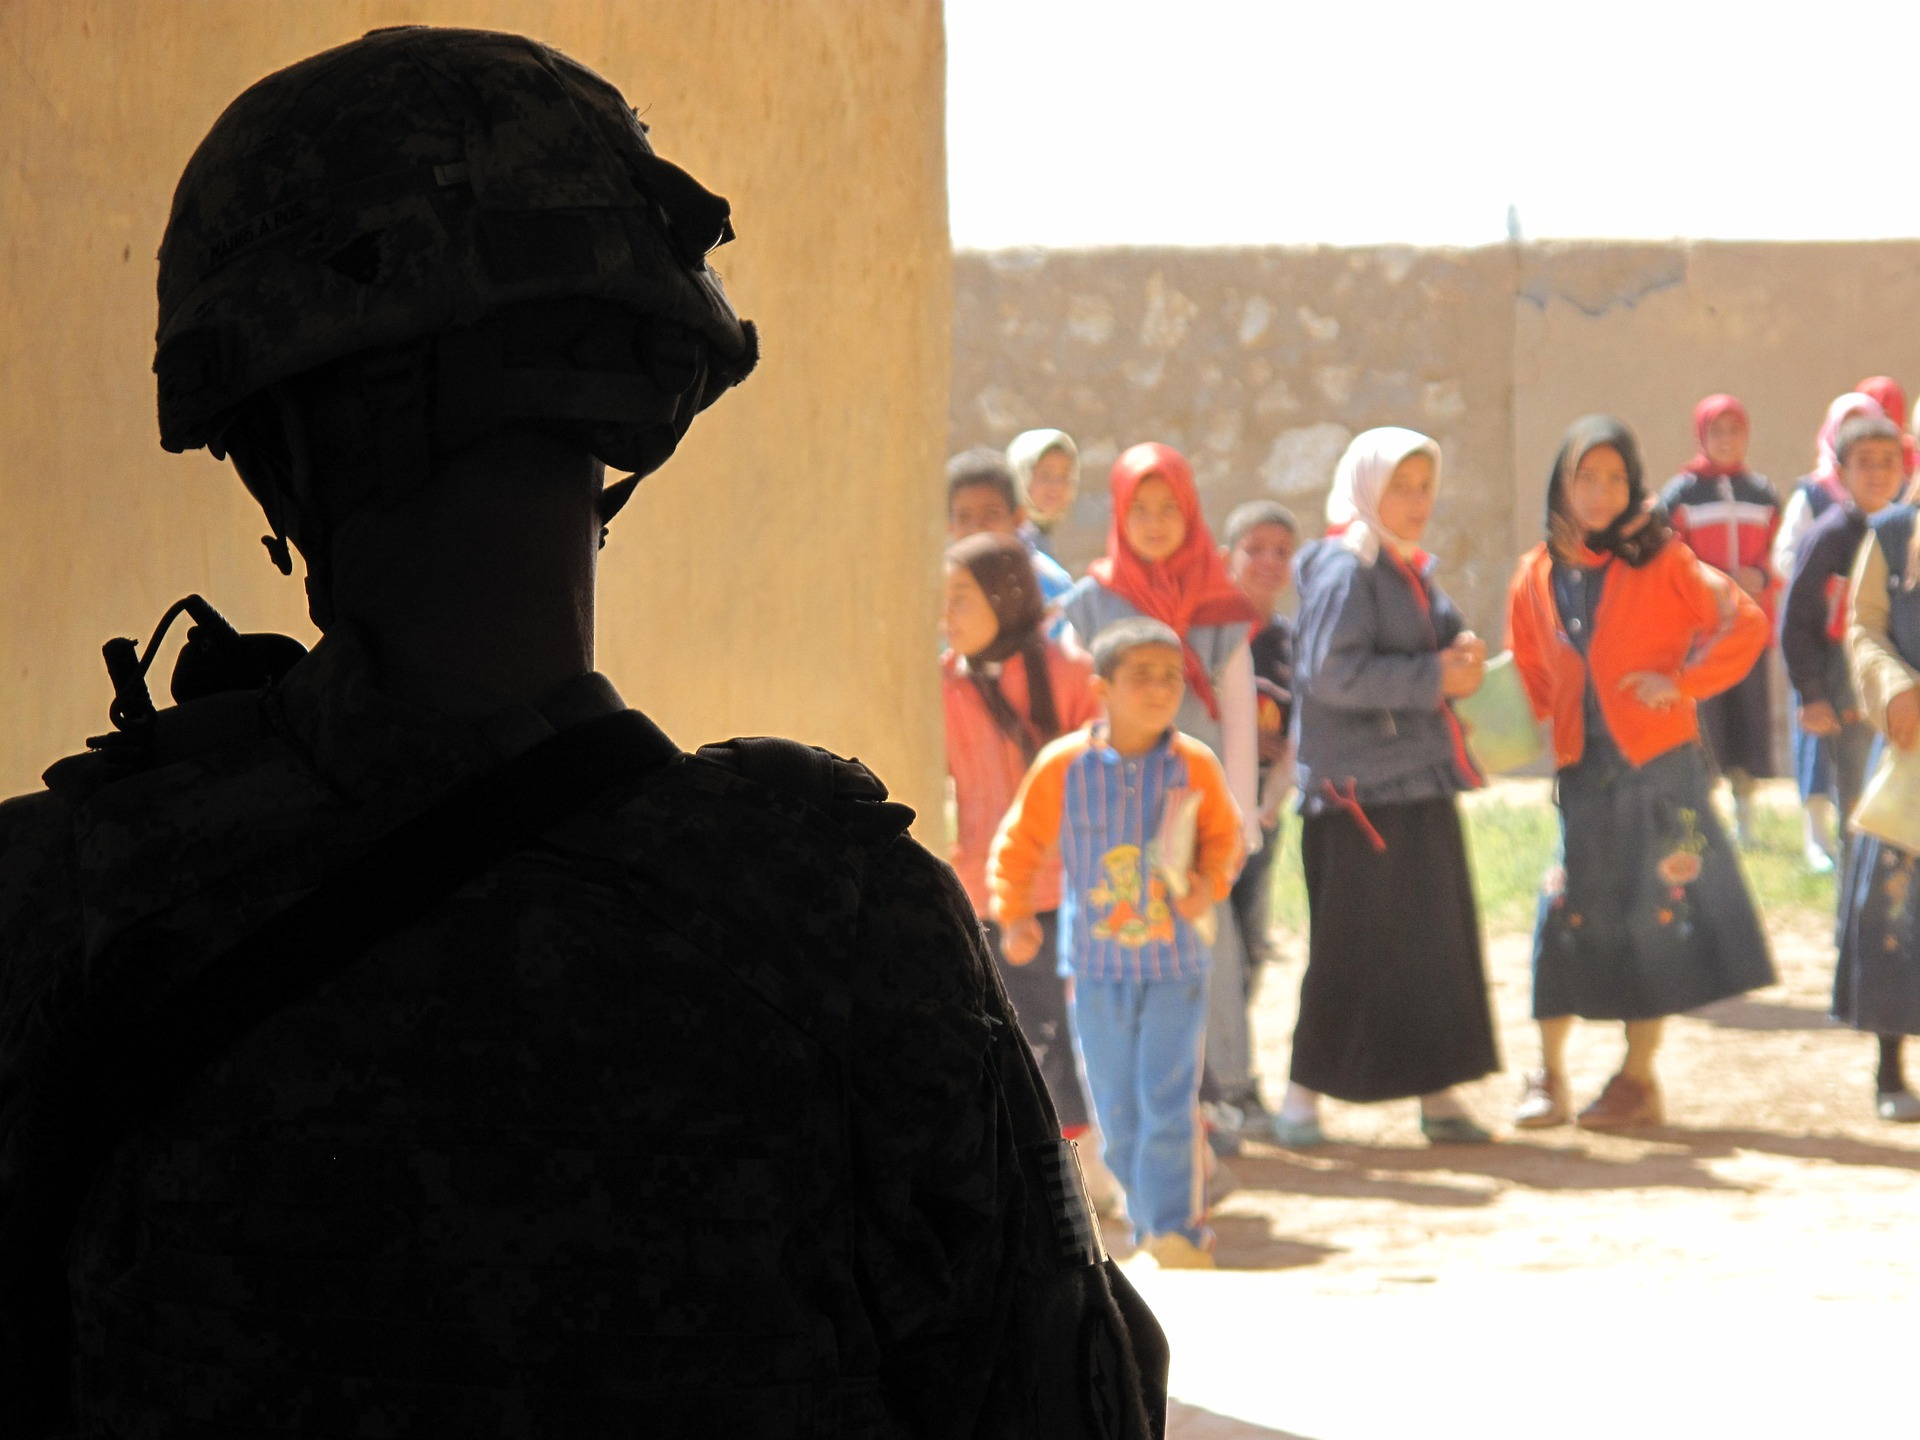 Soldier guards school in Iraq